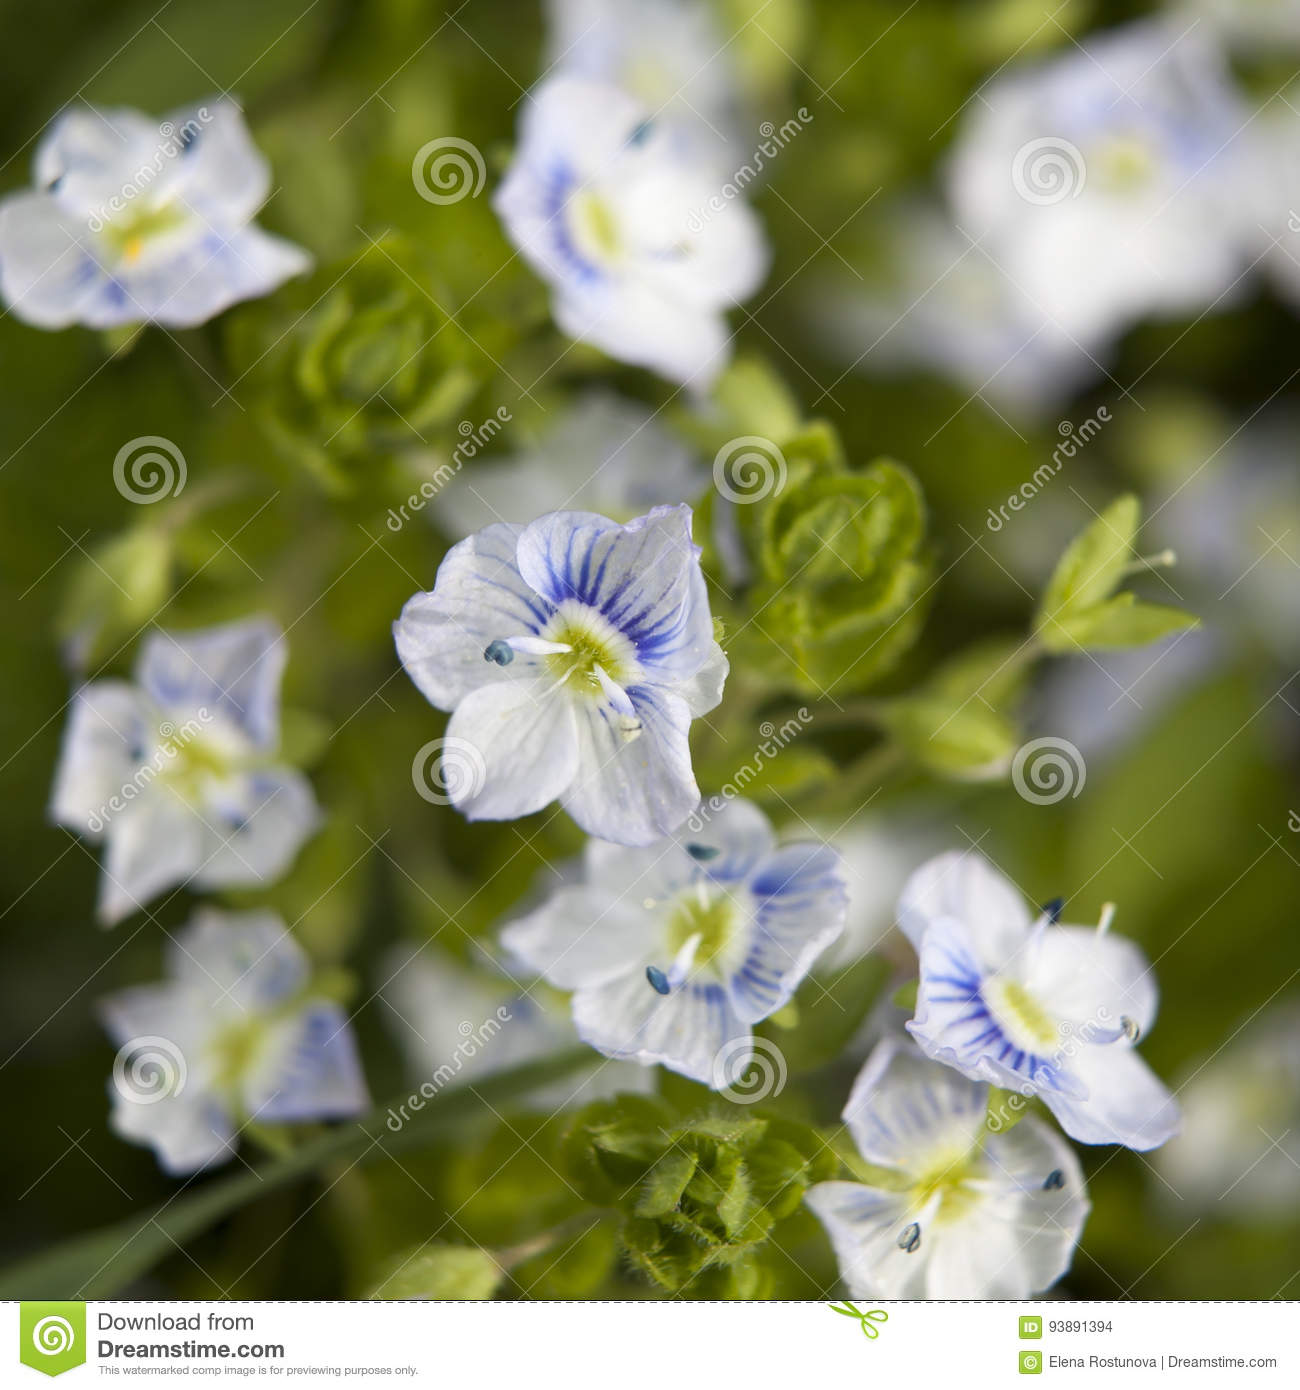 The blue ivy leaved speedwell veronica hederifolia ssp hederifolia download the blue ivy leaved speedwell veronica hederifolia ssp hederifolia flowering plant stock photo image izmirmasajfo